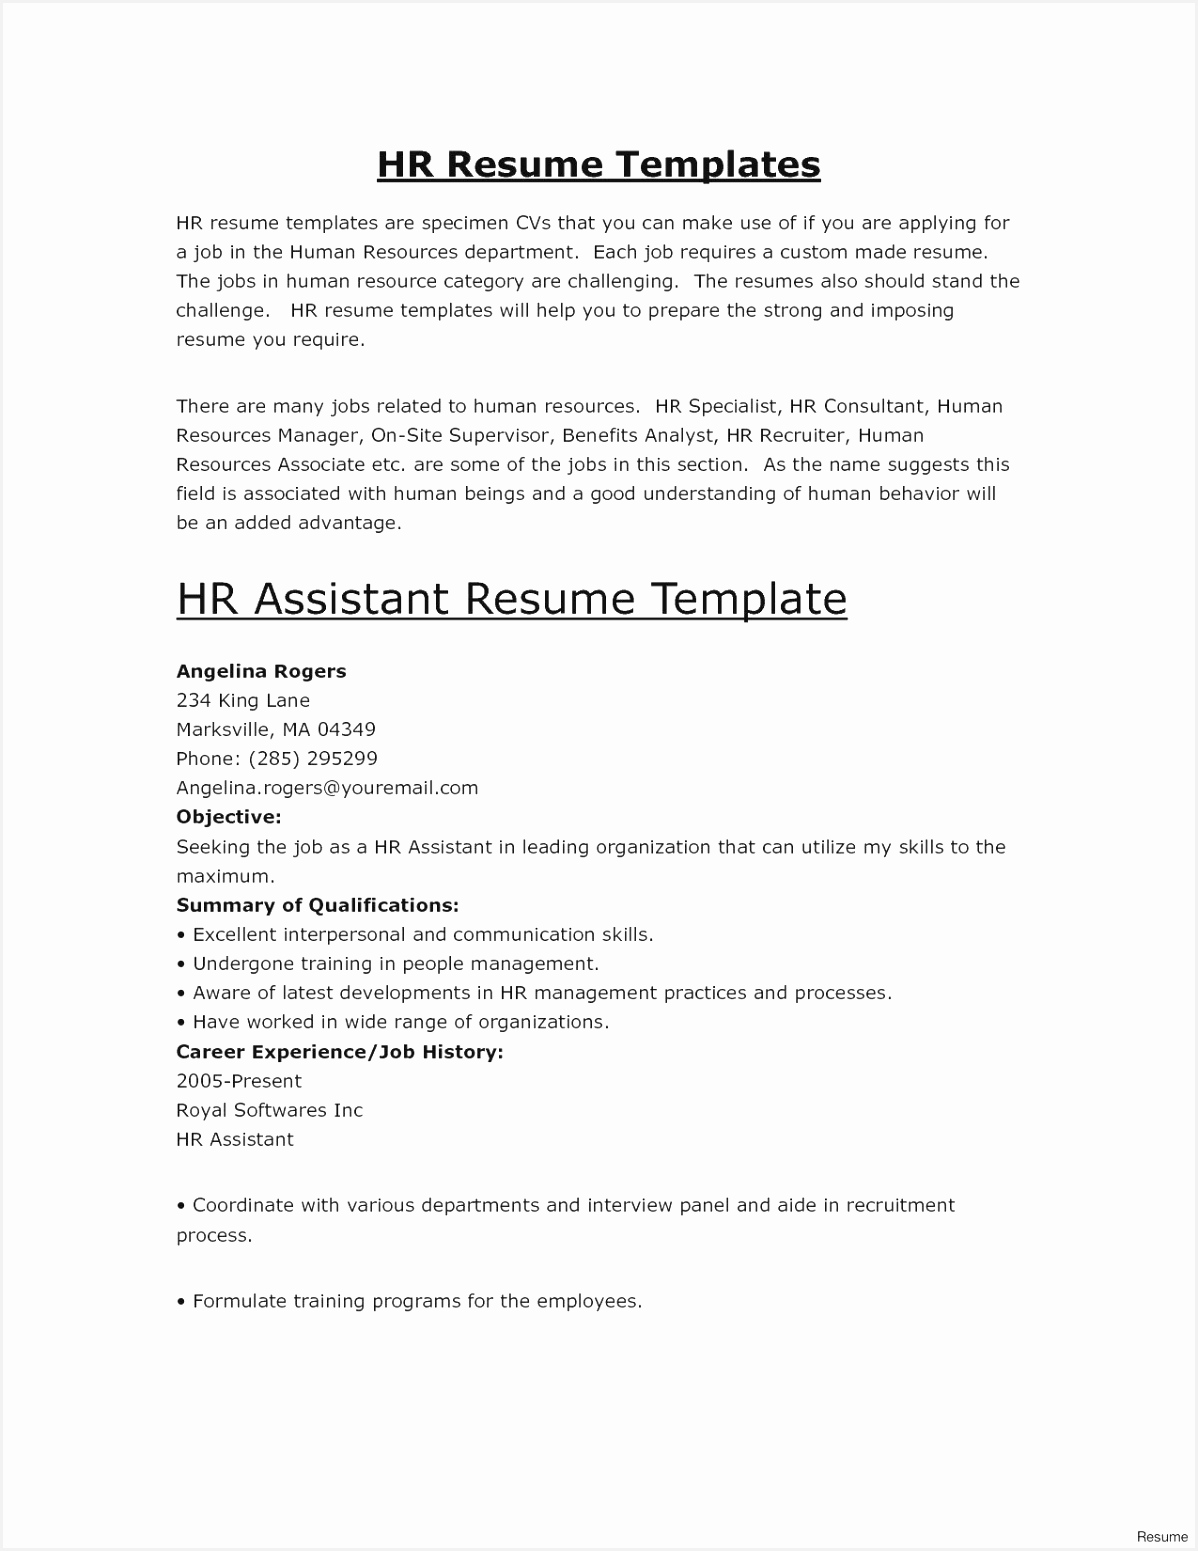 Electrical Engineering Resume Template Fwavj Elegant Electrical Engineer Resume Sample15511198